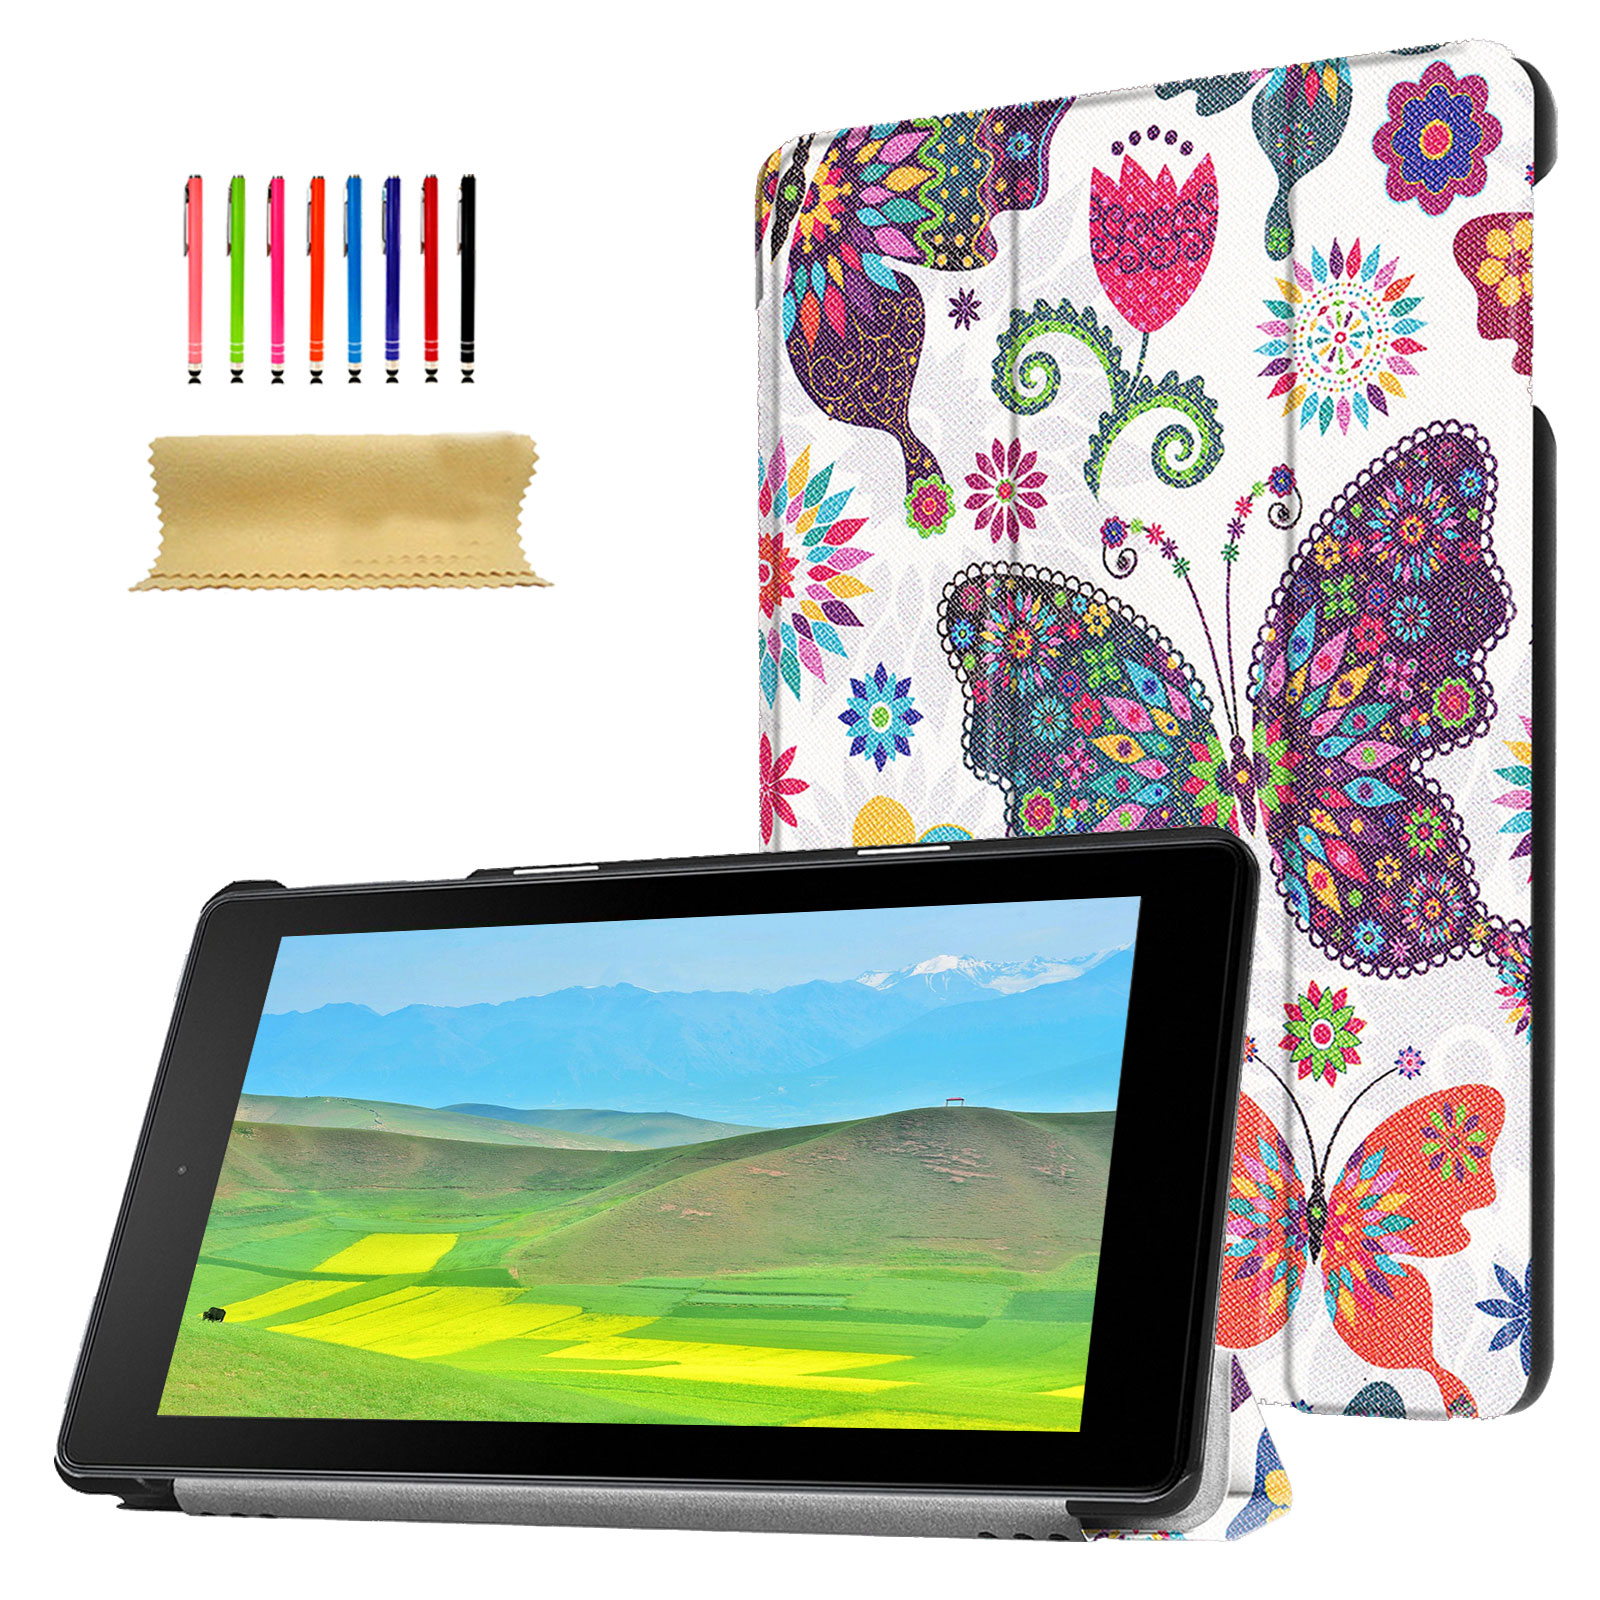 Goodest Kindle Fire HD 8 2017 2018 Case, Tri-fold Stand Case for All-New Amazon Fire HD 8 Tablet, Slim PU Leather Case Folding Stand Case Cover for Fire HD 8 with Auto Wake/ Sleep, Colorful Butterfly